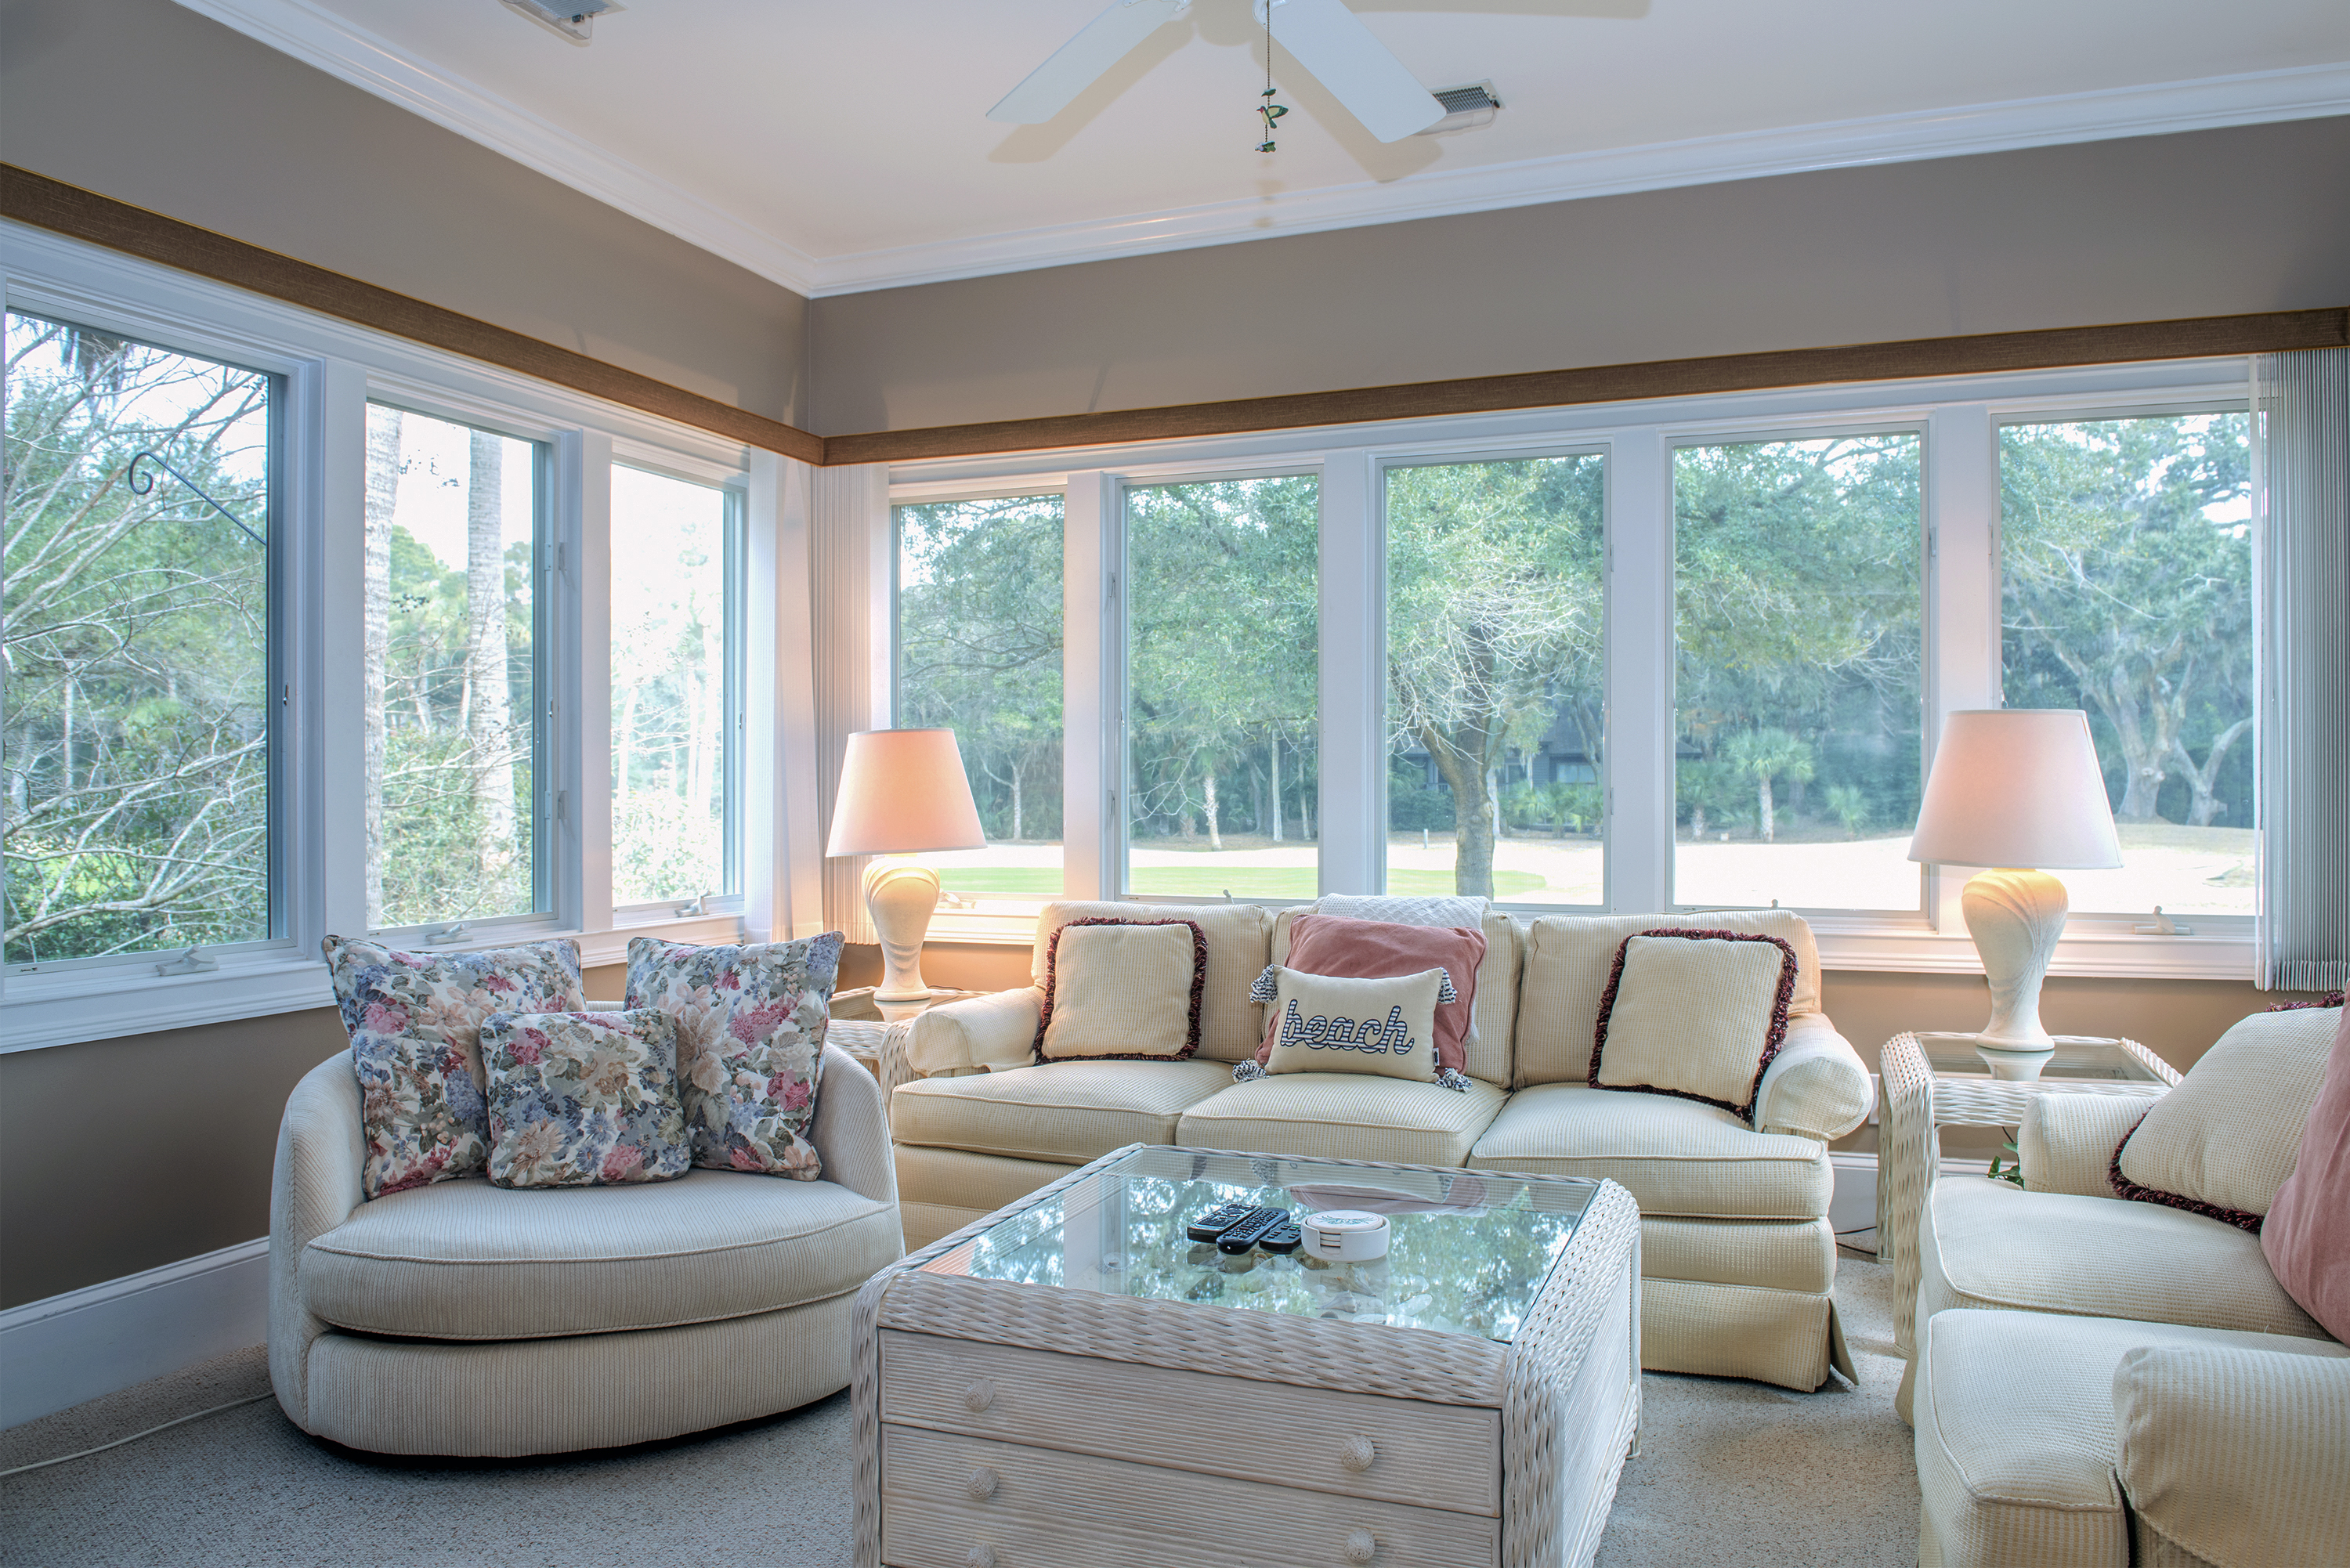 Light floods the sun room. The over-sized furniture is perfect for naps!